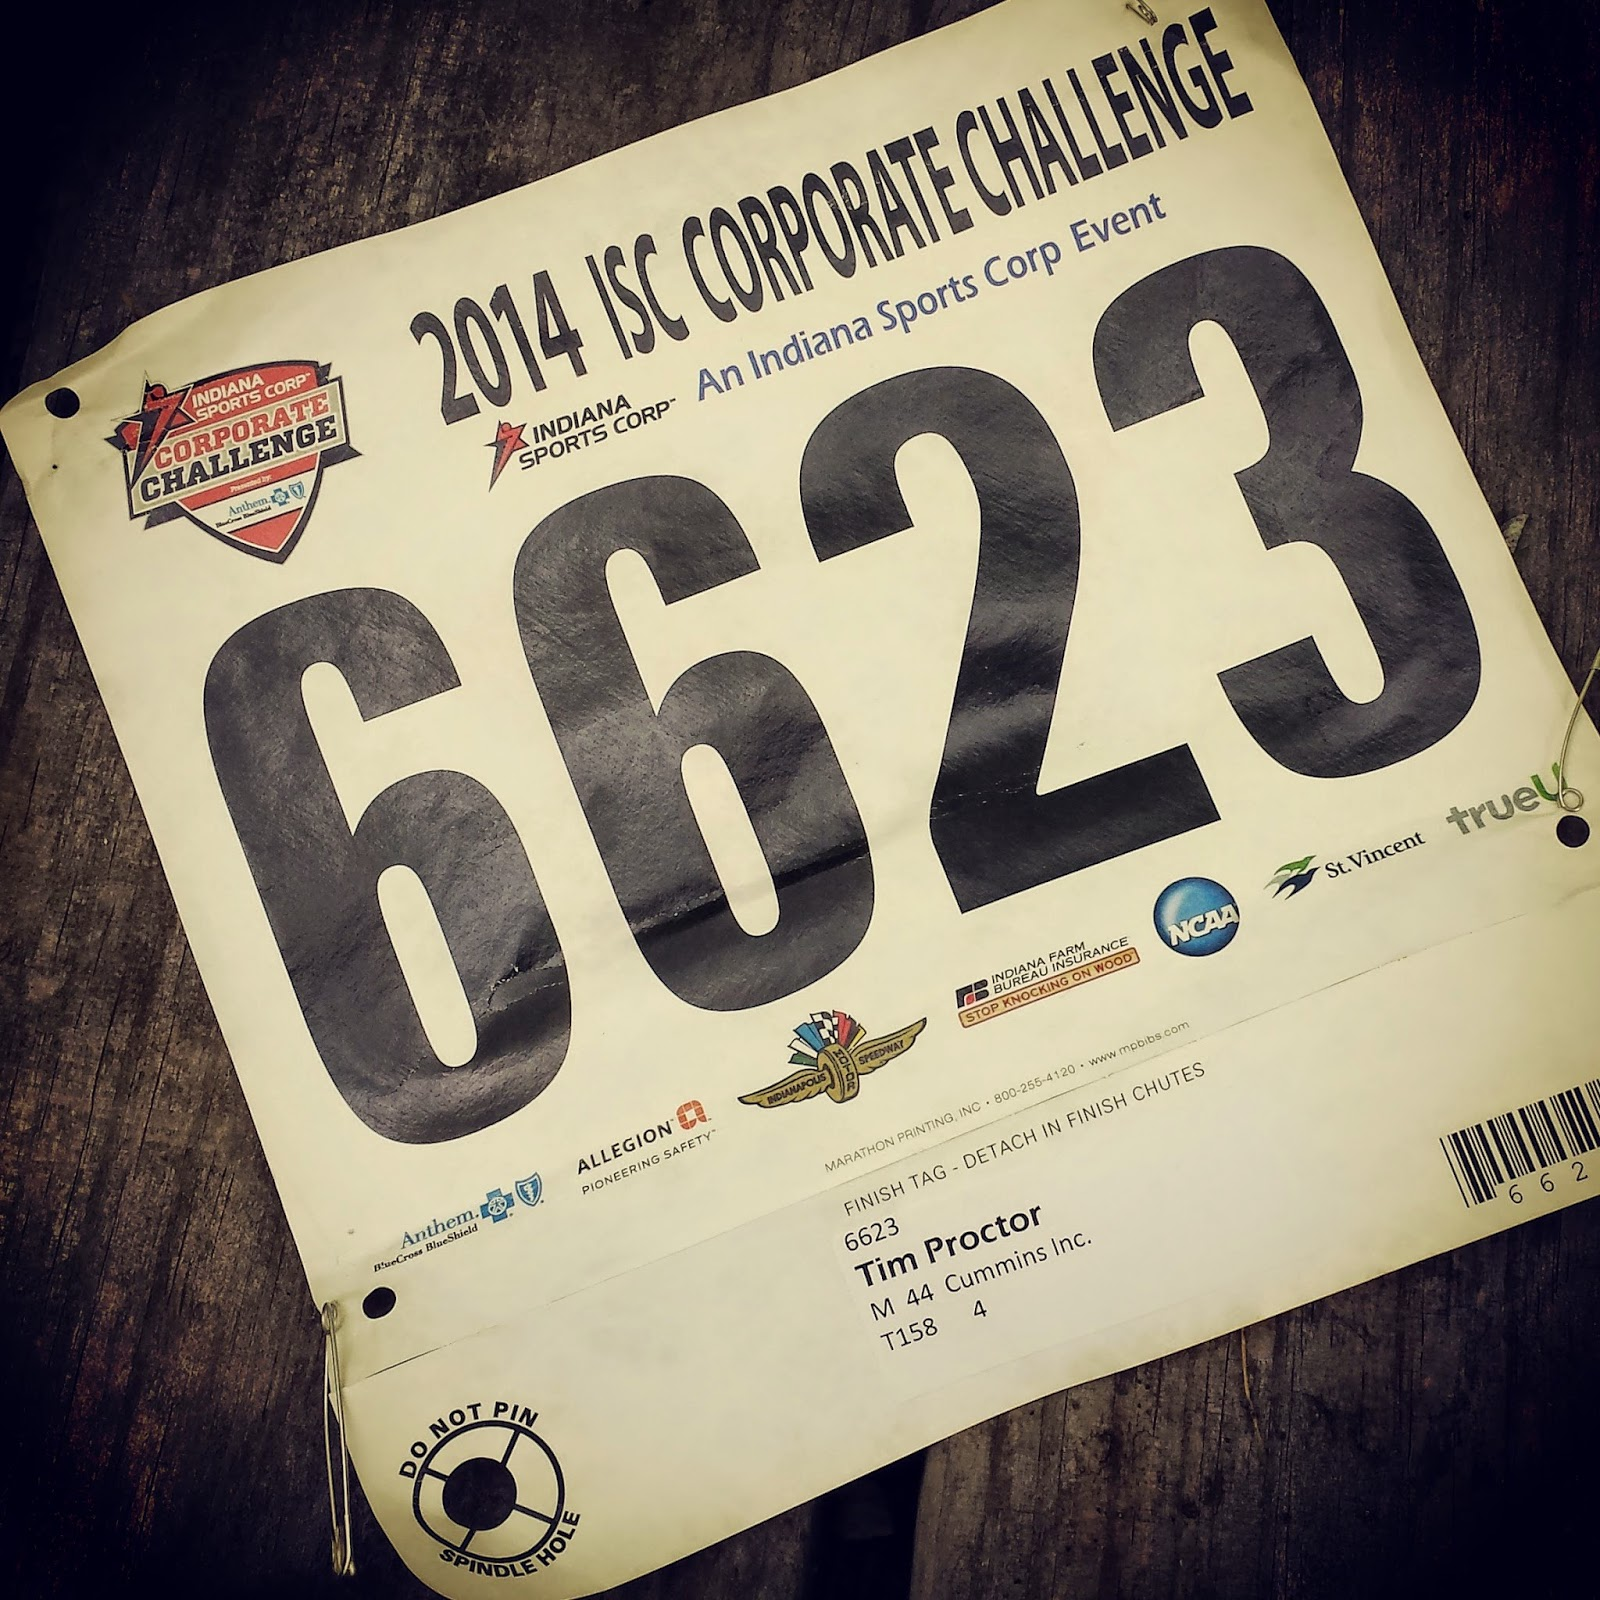 Run, Ride, Race             Repeat: Corporate Challenge 2014